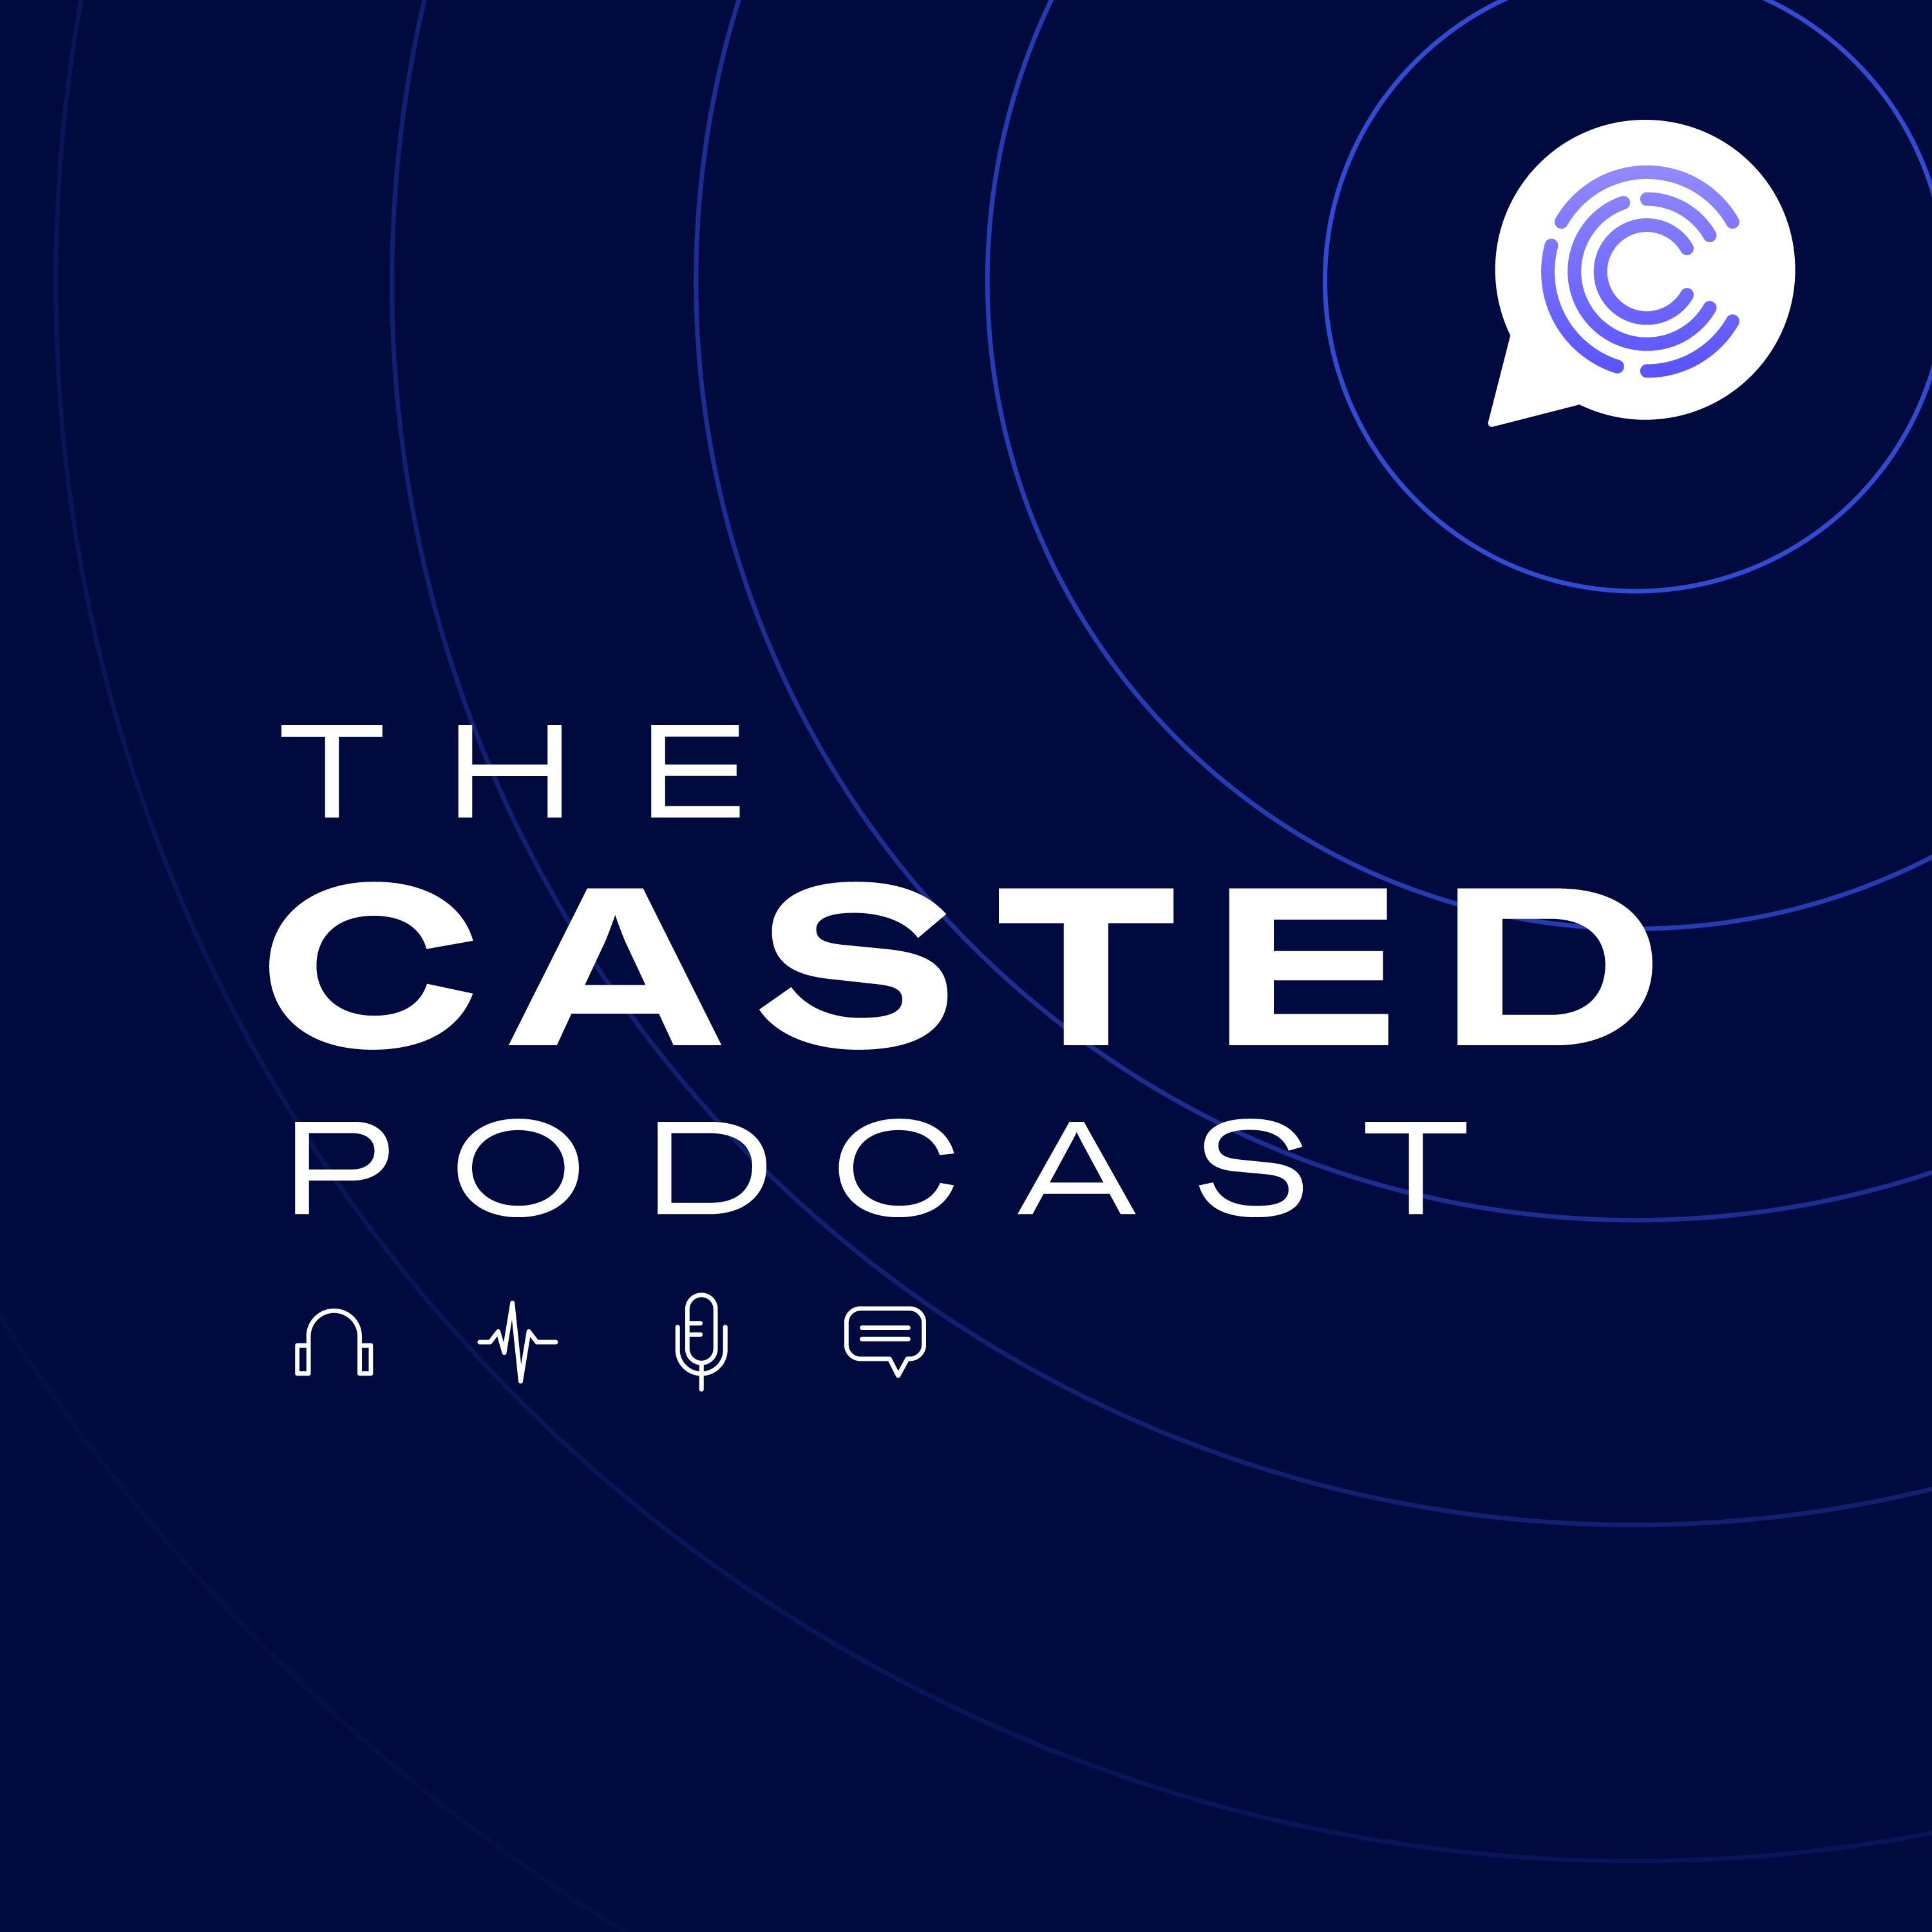 The Casted Podcast